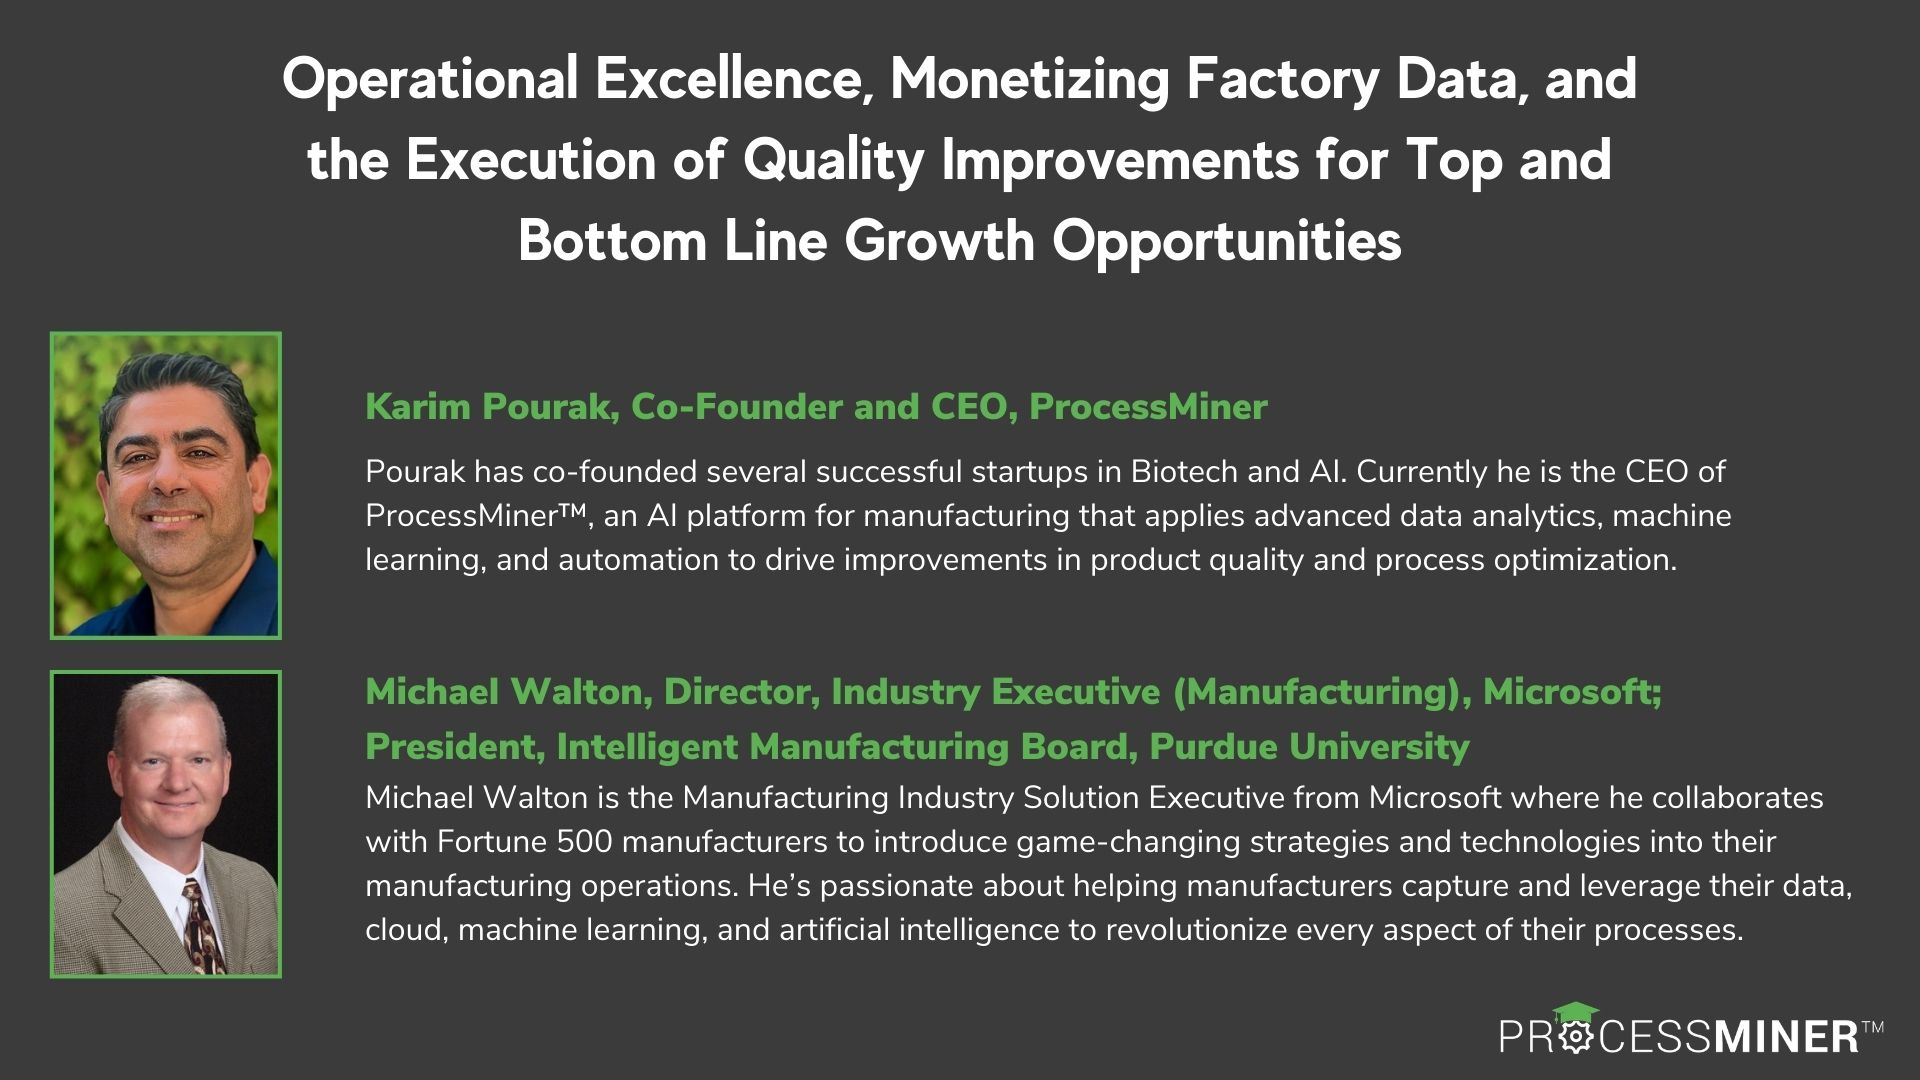 ProcessMiner University - Operational Excellence, Monetizing Factory Data, and the Execution of Quality Improvements for Top and Bottom Line Growth Opportunities